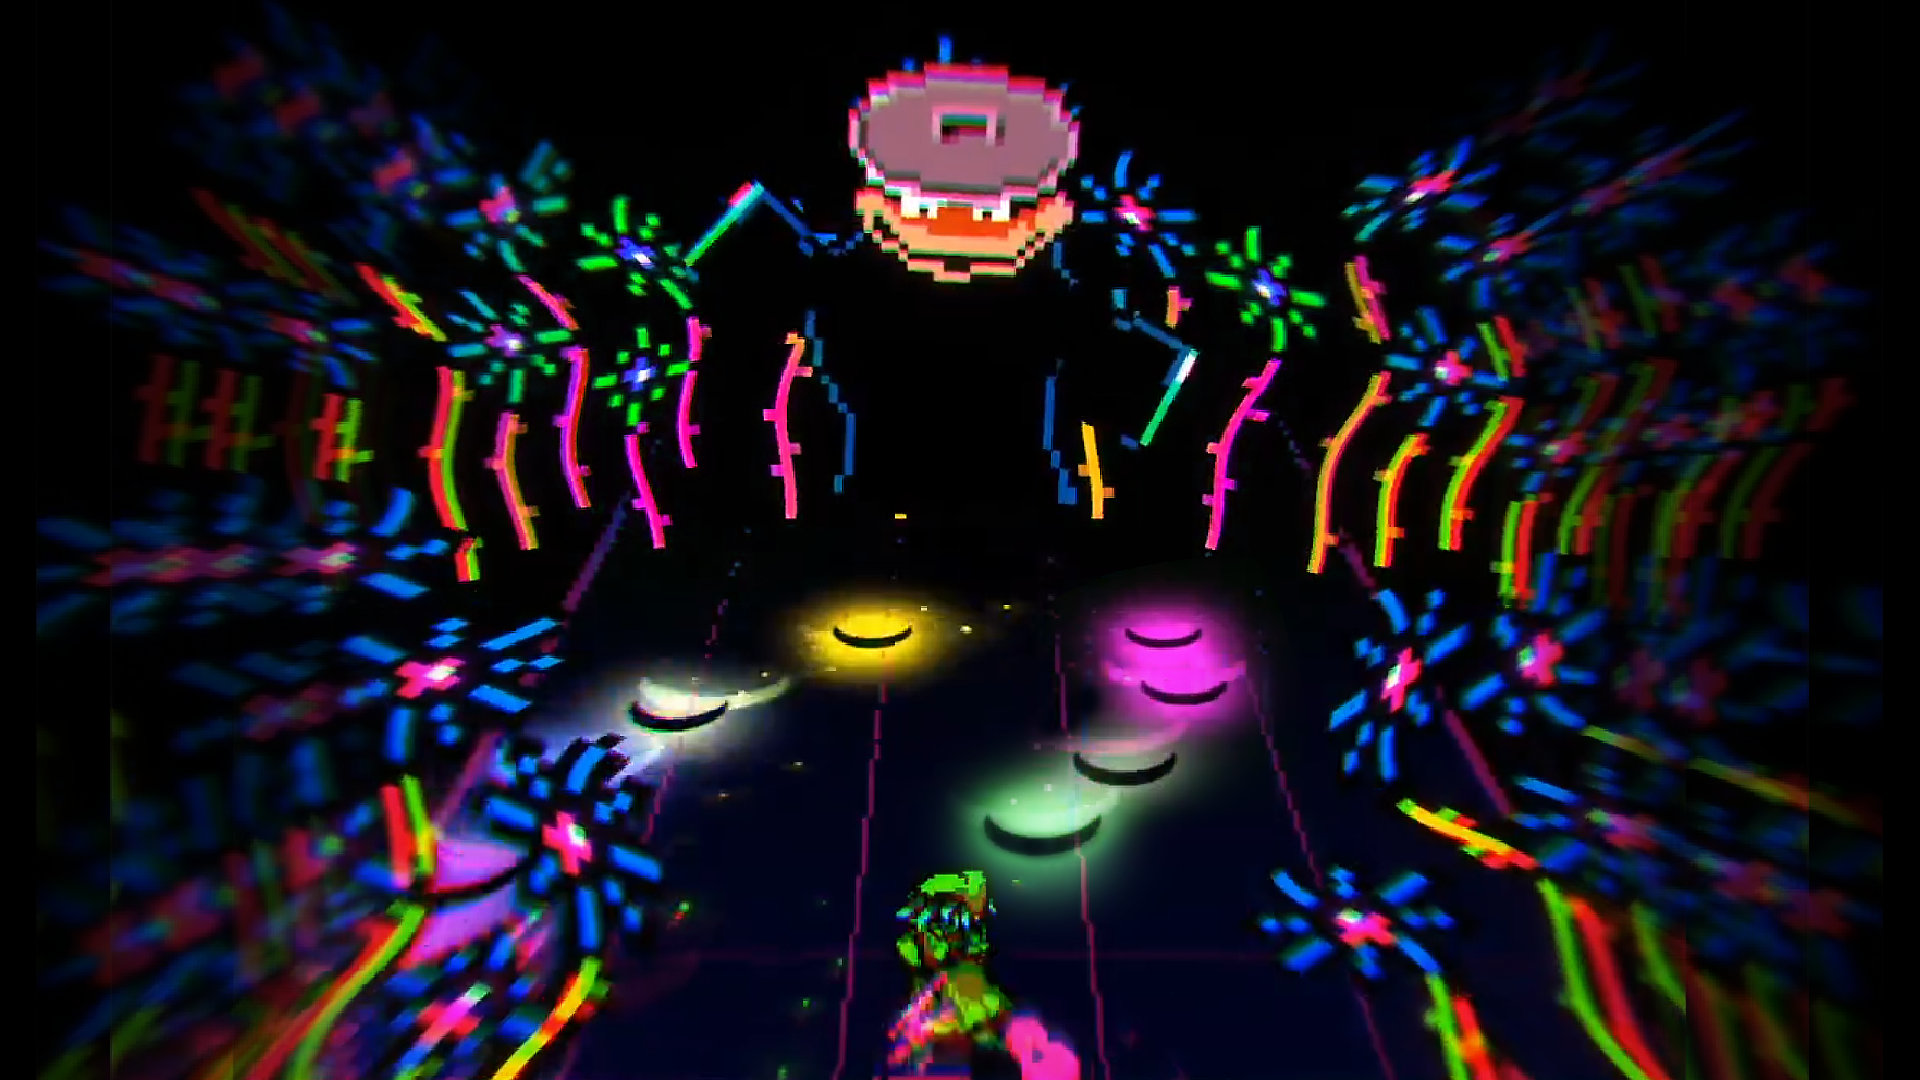 Everhood Screenshot of psychedelic colored flowers spiraling around as a character faces off against a frog-like face with a garbage can lid on its head.